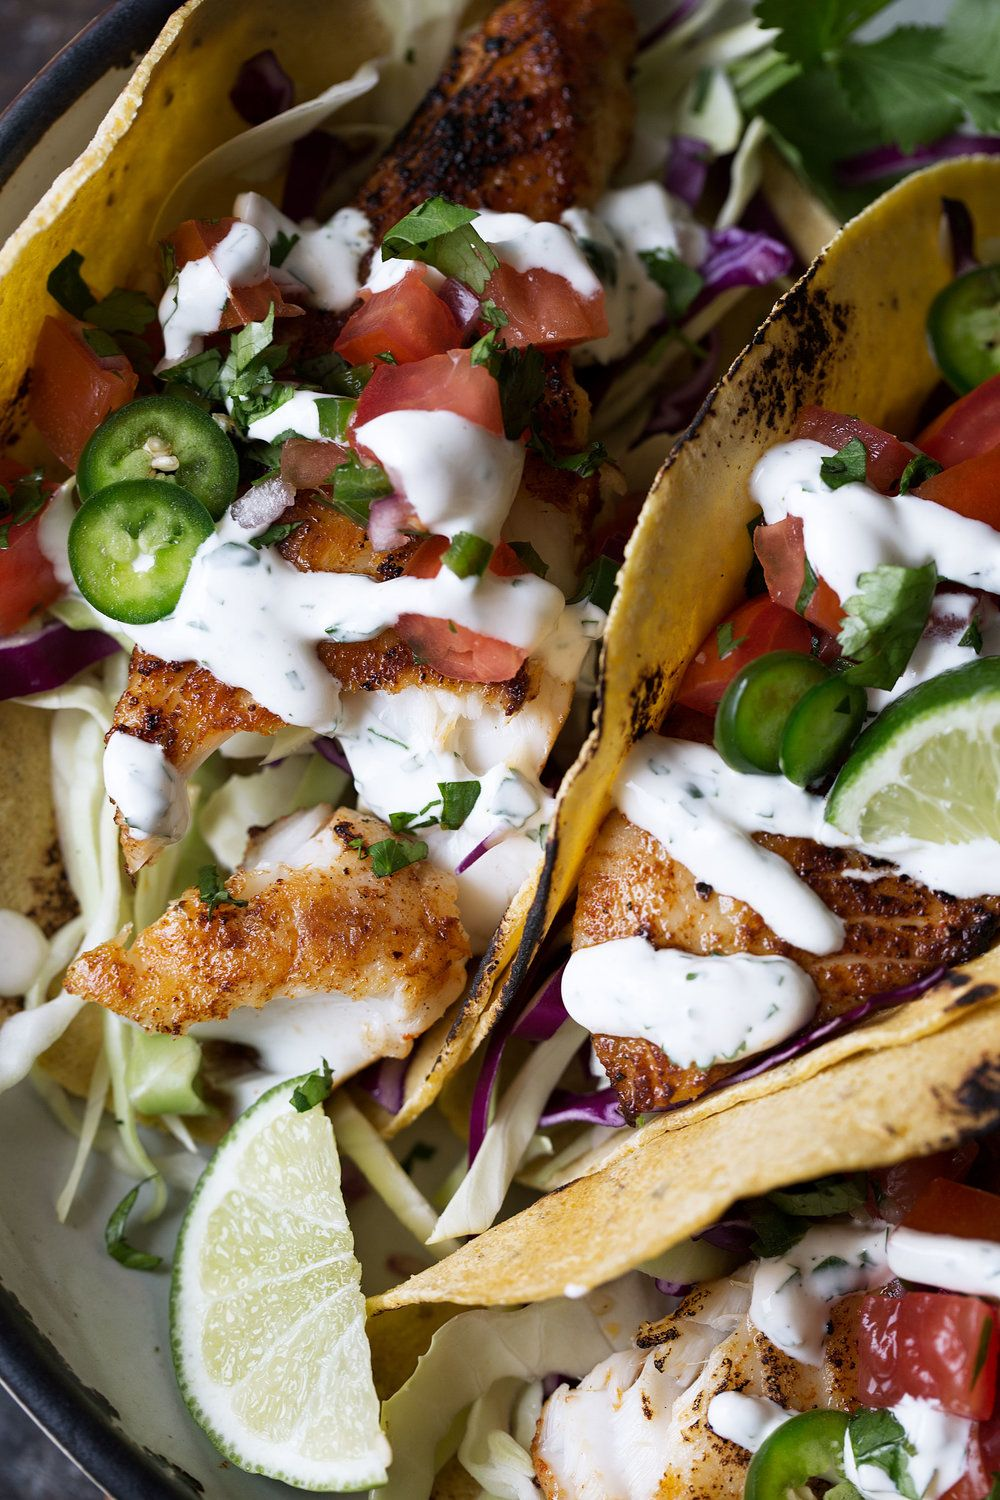 Fish Tacos With Cilantro Lime Sauce Grilled Fish Tacos Recipes Cilantro Lime Sauce